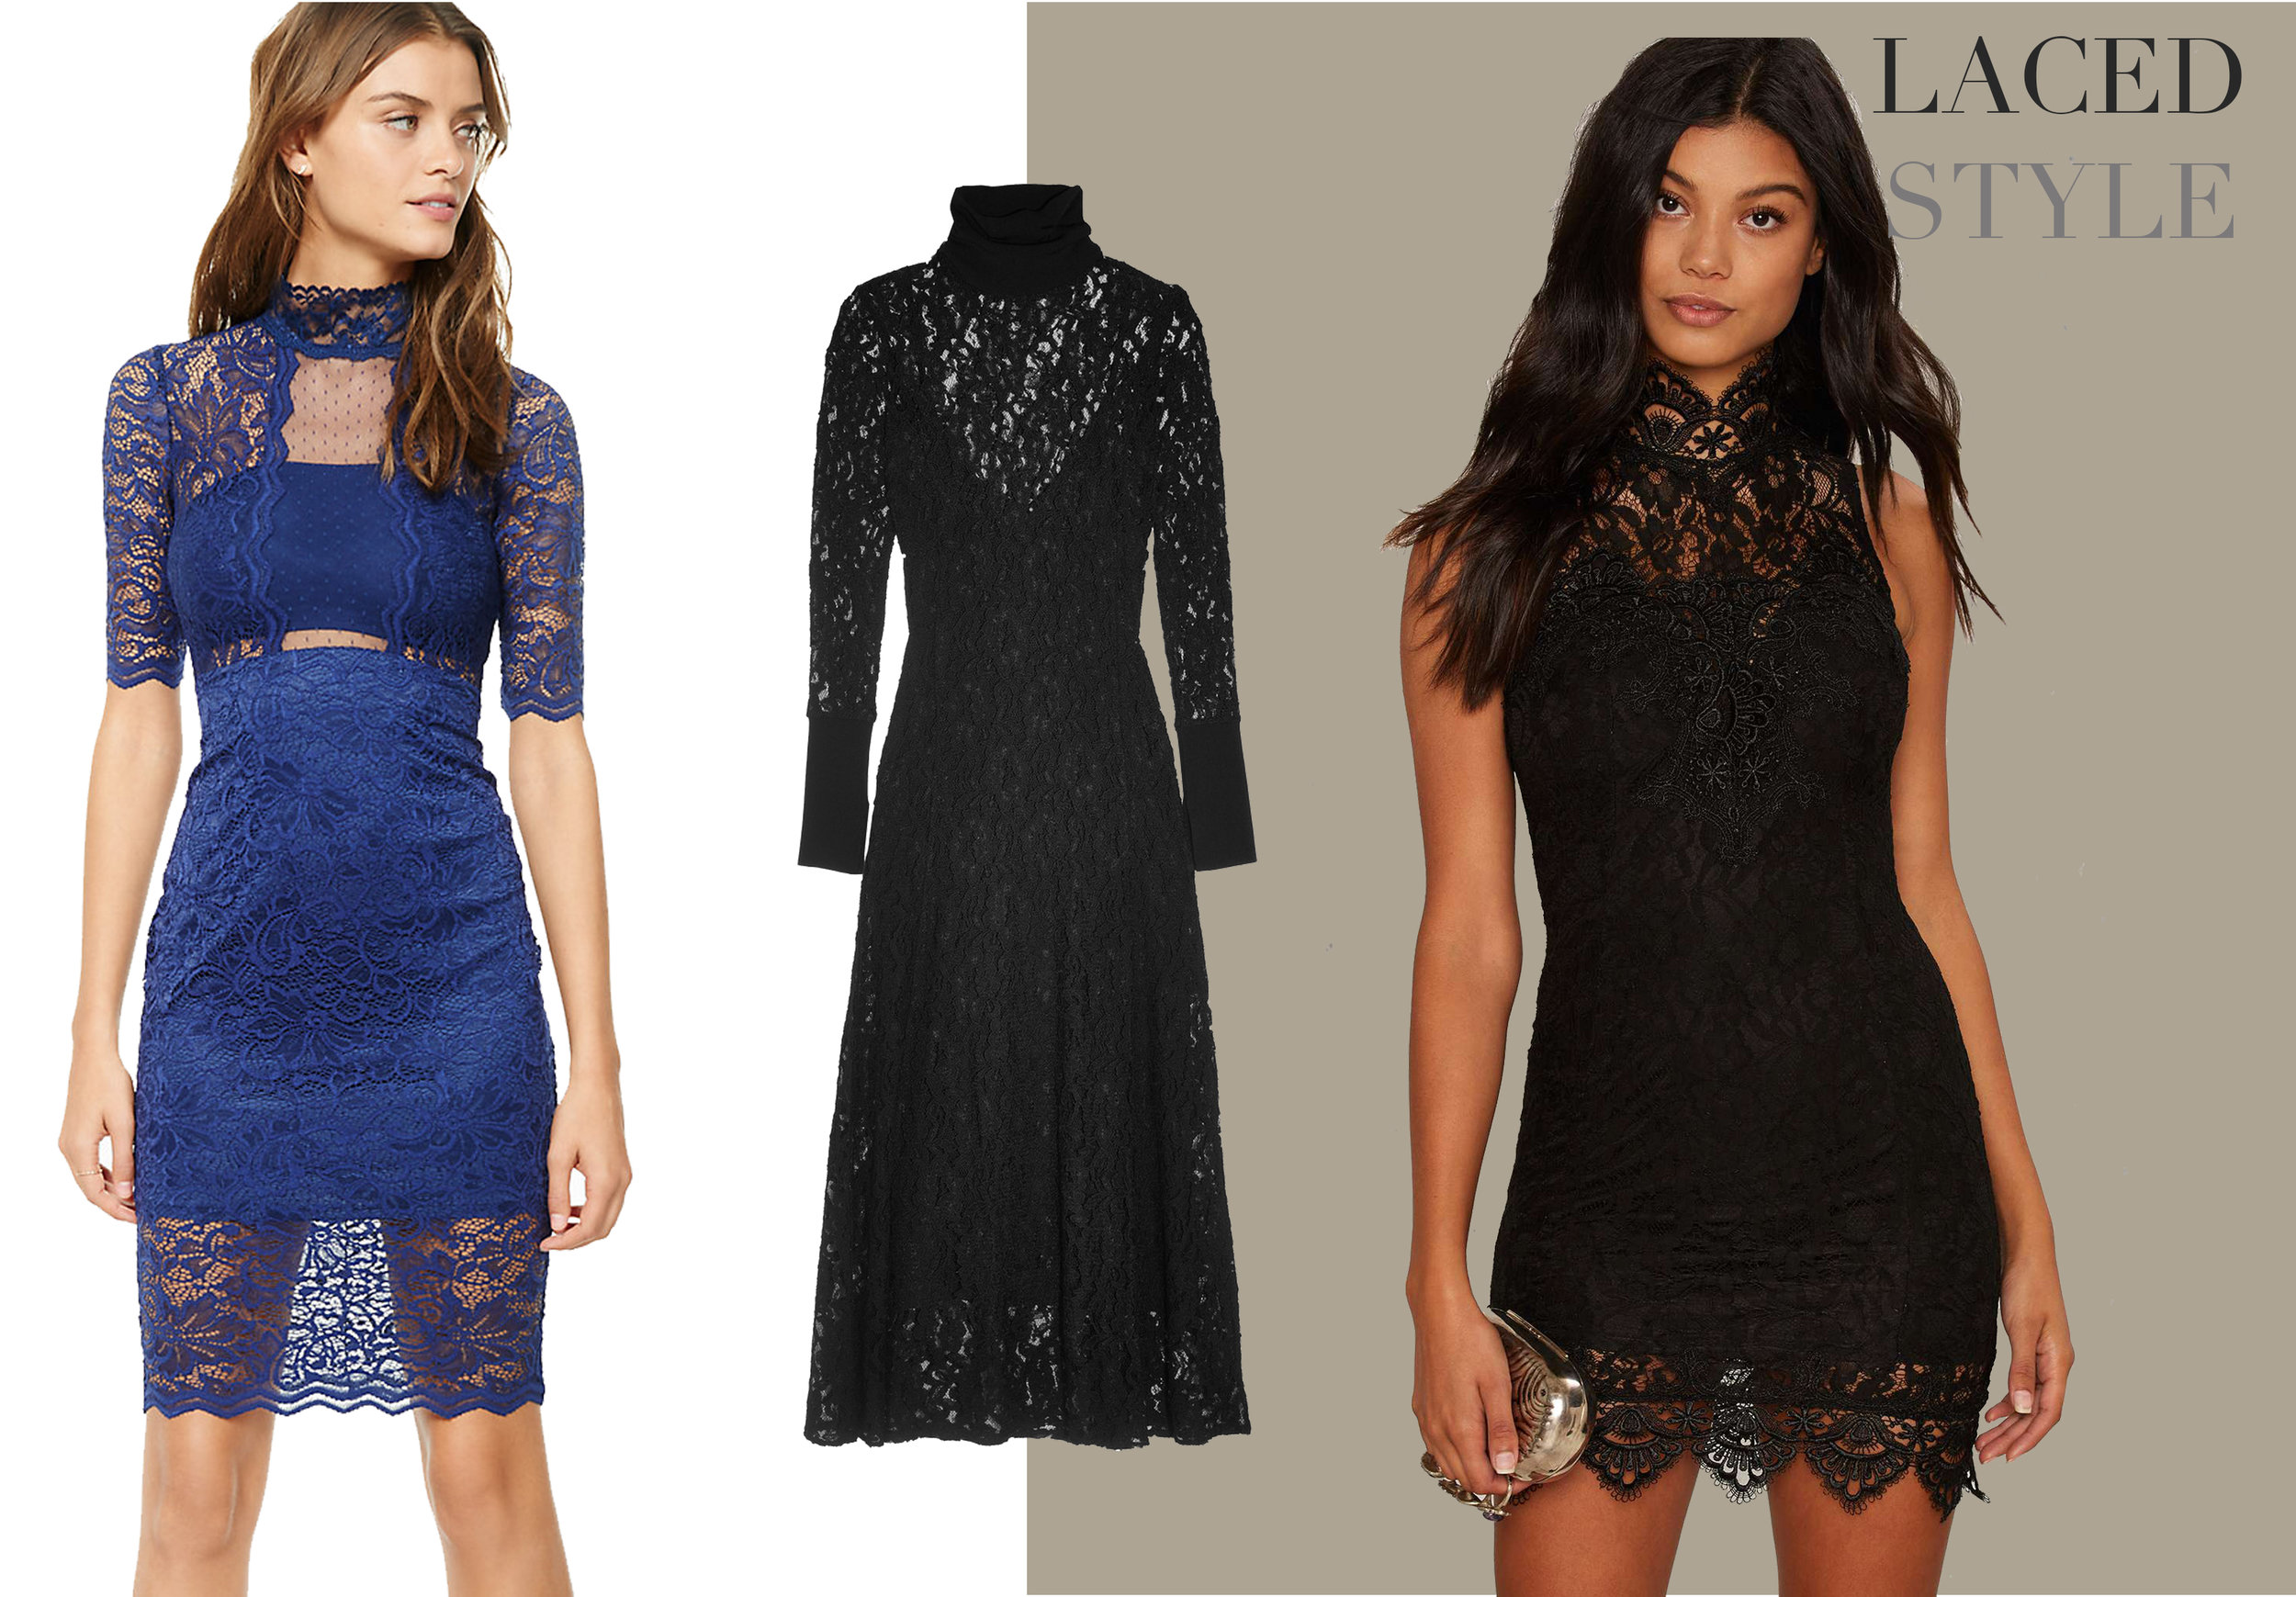 Lace is sexy AND demure which is such an alluring combo. Halter, strapless, sheath and long sleeve styles take the look up a notch and gives an updated feel to the timeless fabrication.    Express Blue Lace Dress    M  alene Birger Black Turtle Neck Lace Dress    Nasty Gal Black Lace Dress